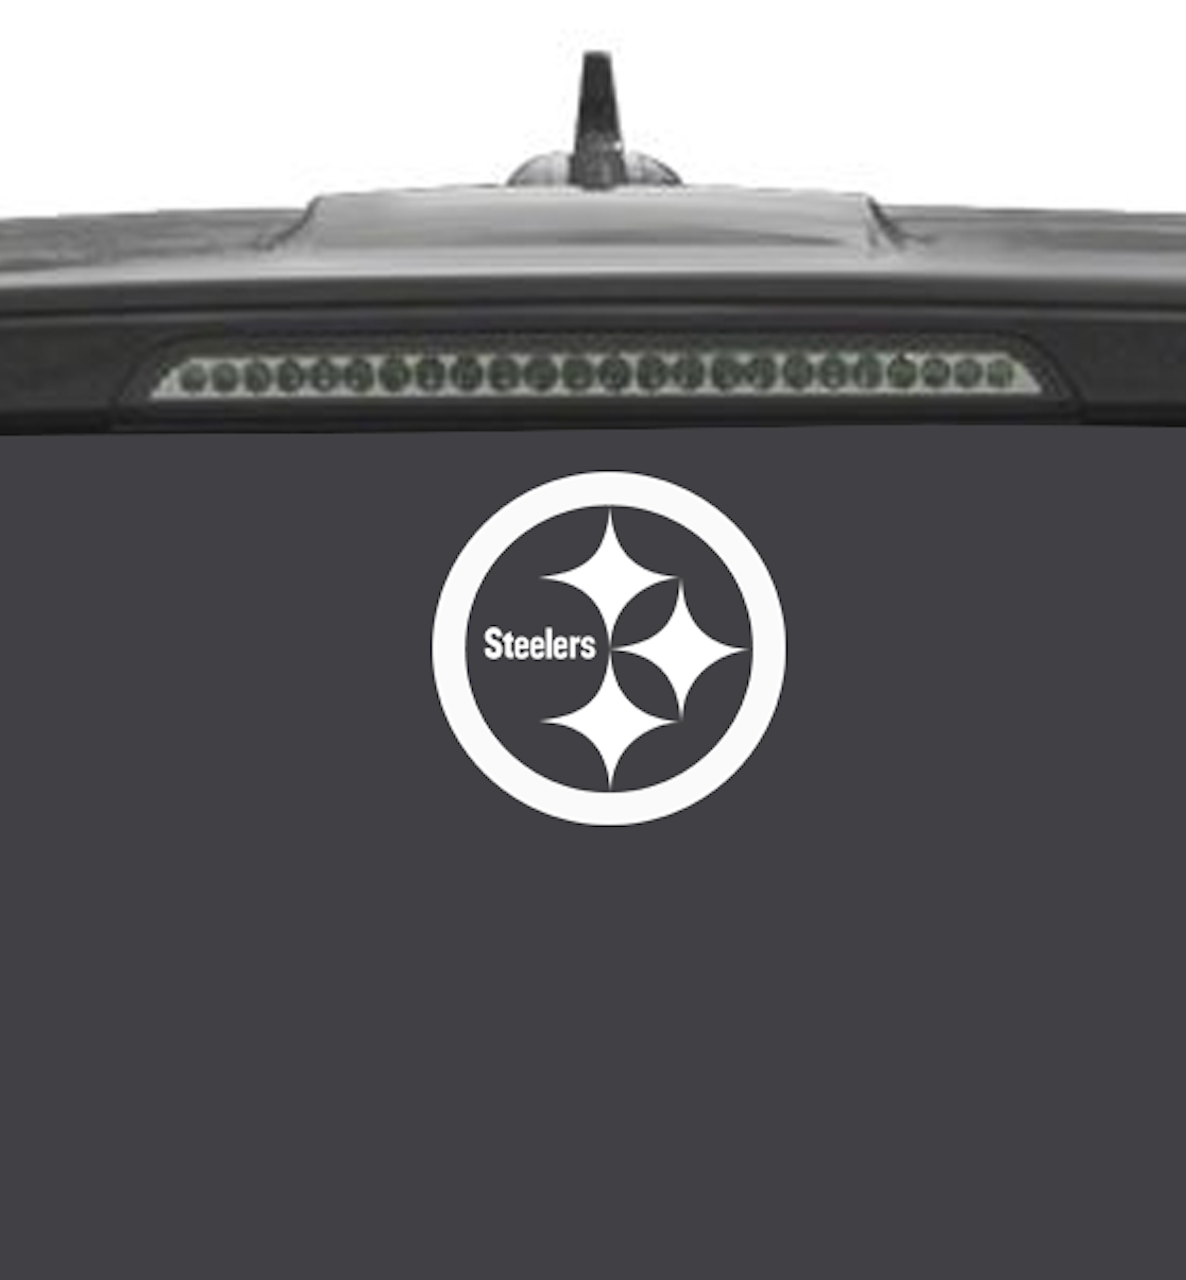 Steelers Car Decal